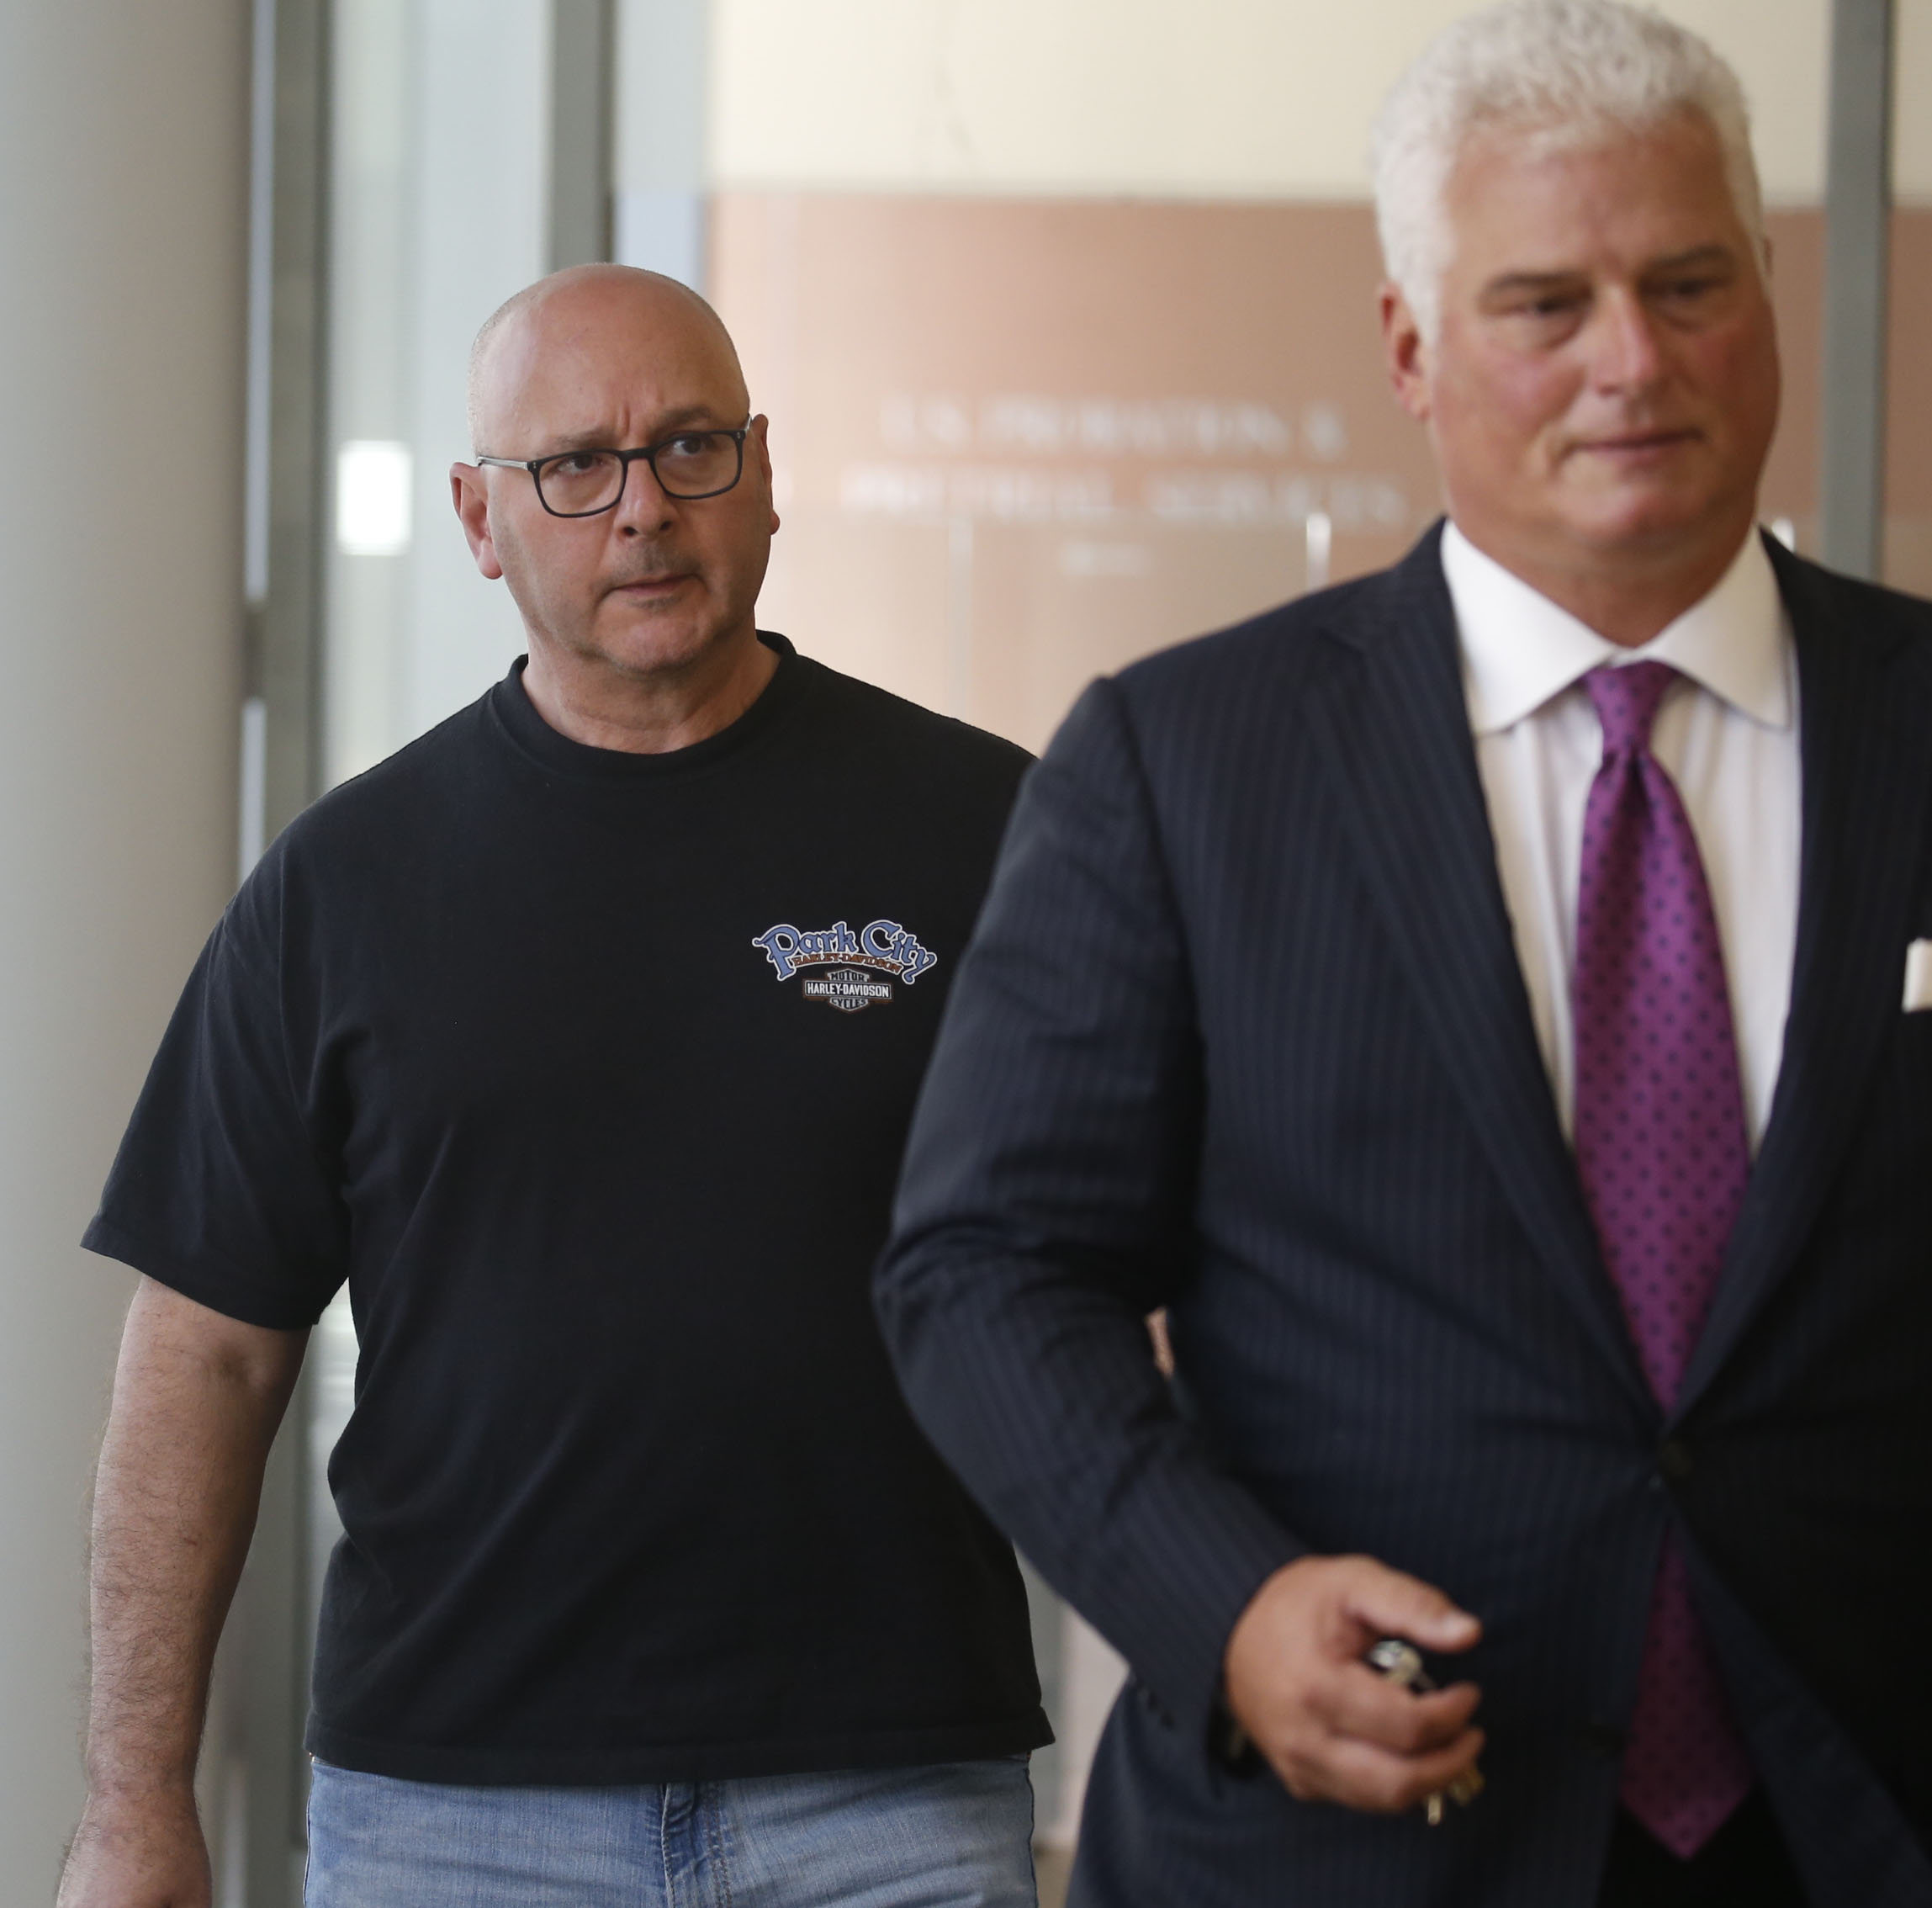 Louis P. Ciminelli, left, gets escorted out of court with his attorney Daniel C. Oliverio after facing charges of  rigging and bribery at Buffalo federal court on Thursday, Sept. 22, 2016.  (File photo/Robert Kirkham/Buffalo News)